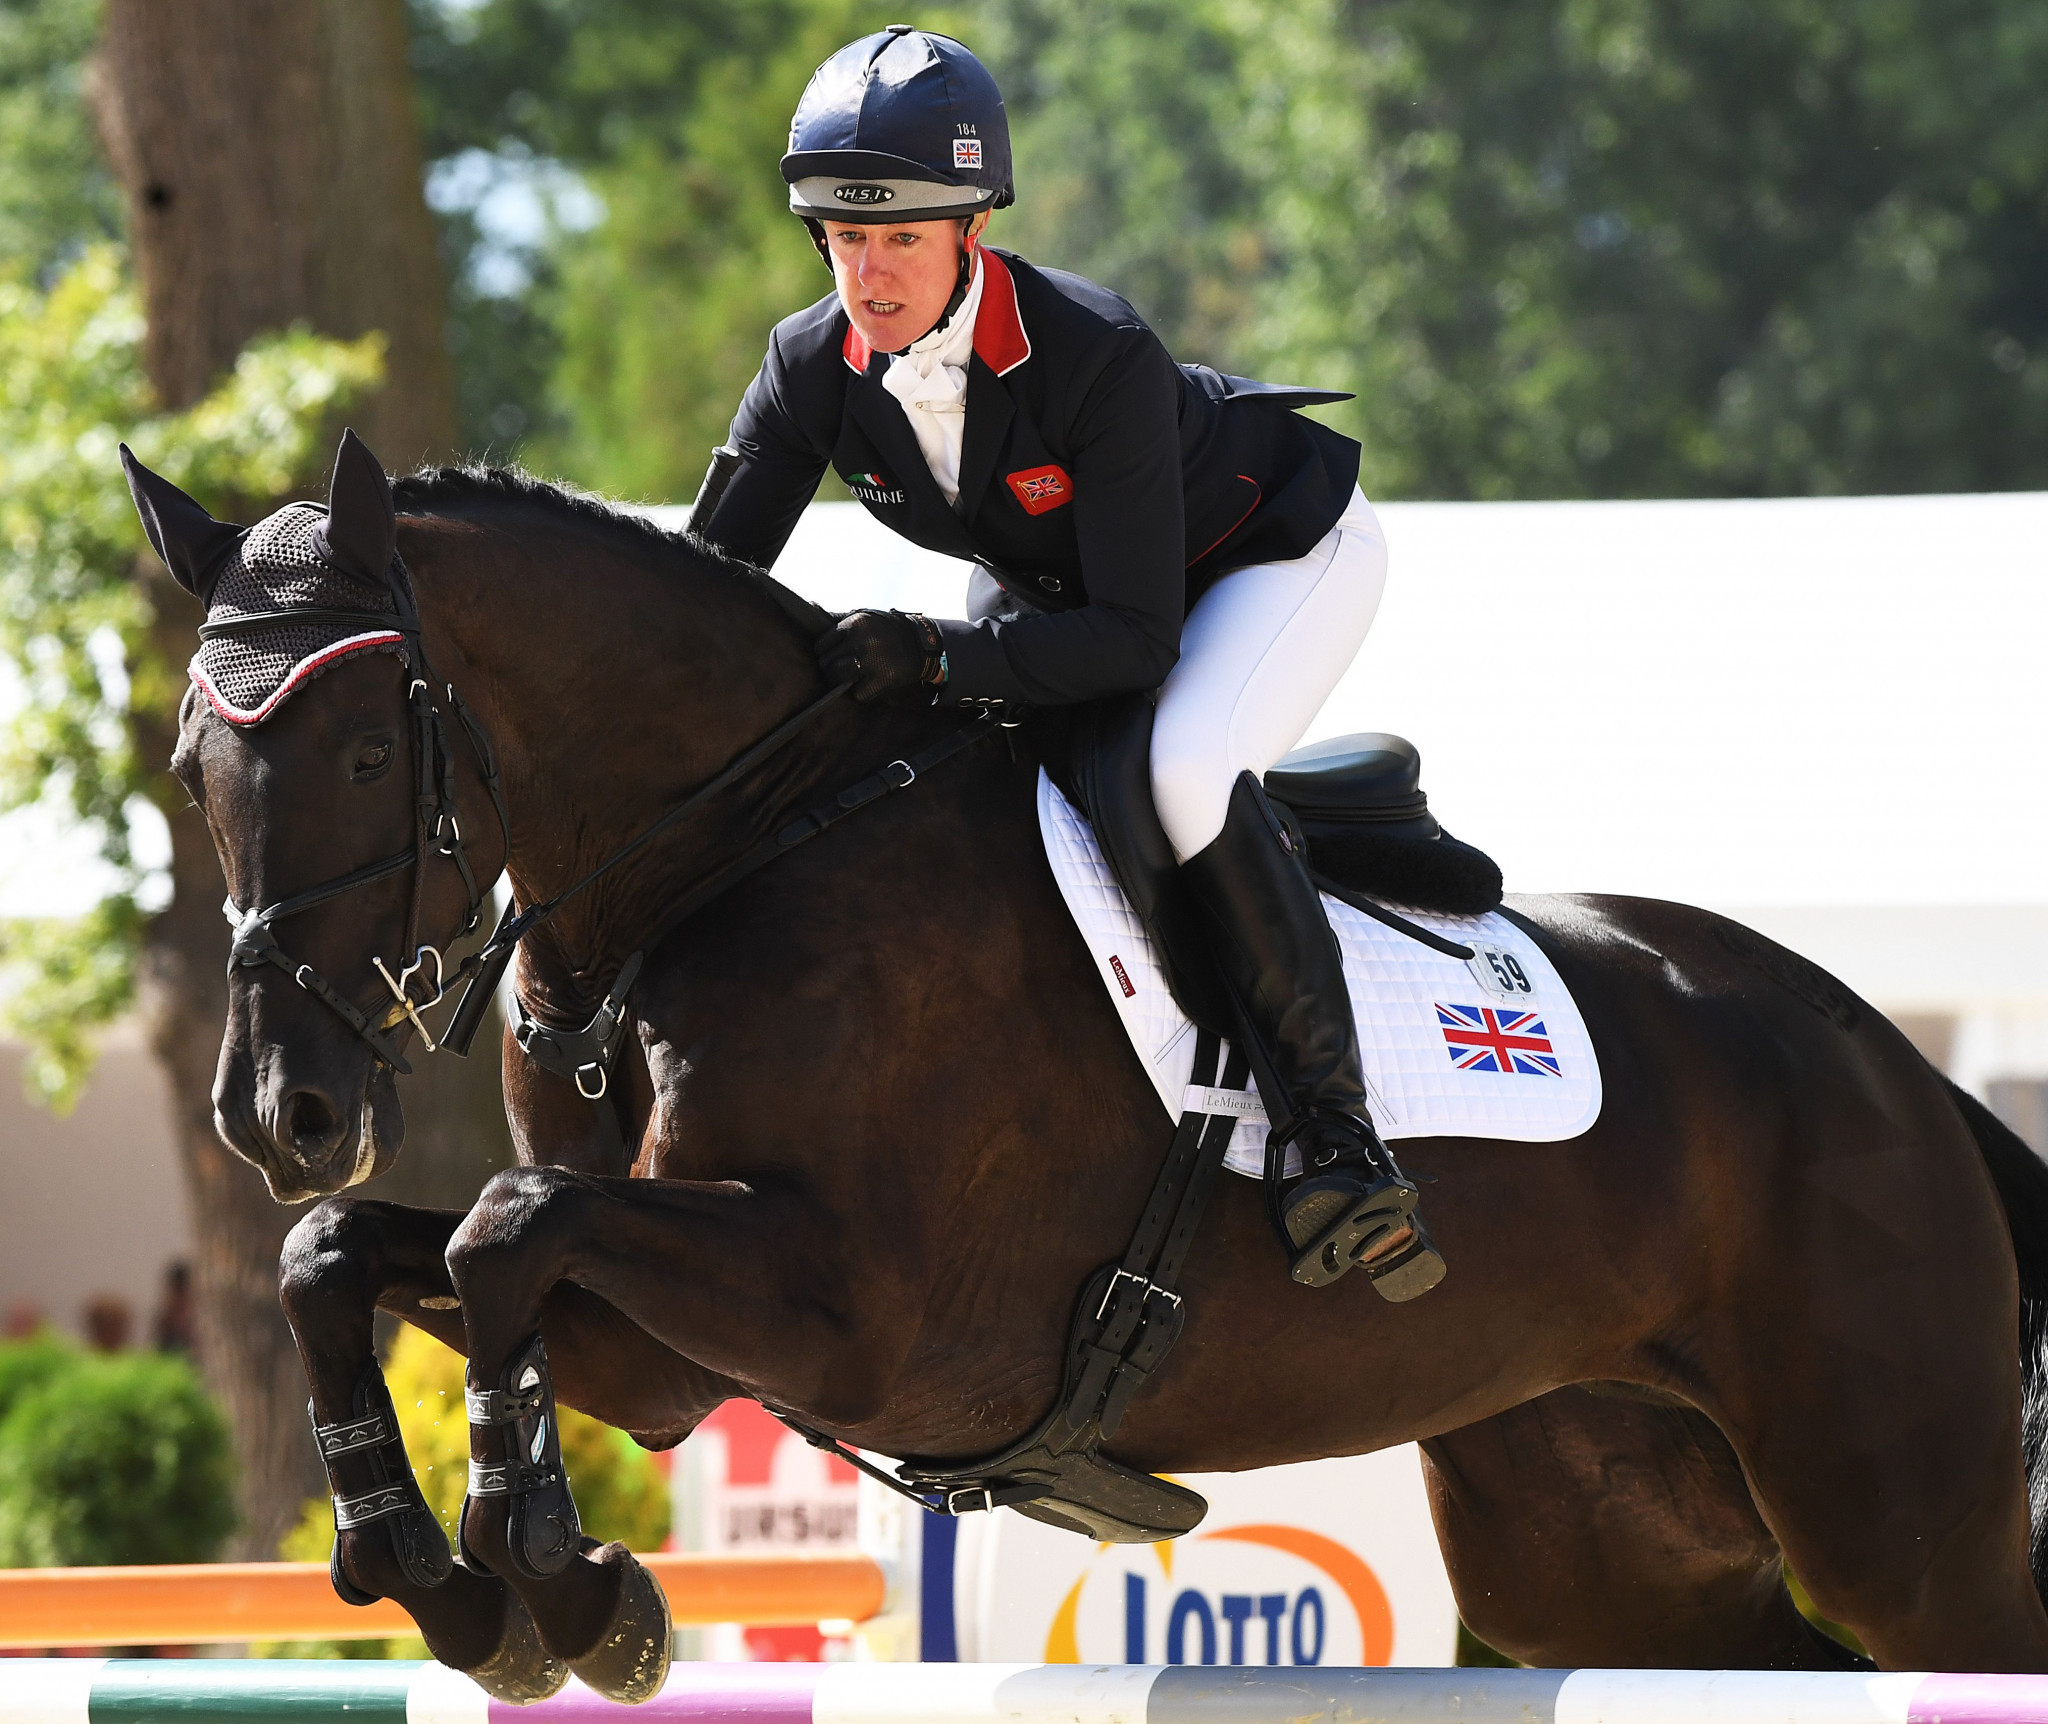 Nicola Wilson has won gold at the 2009 and 2017 Eventing European Championships ©Getty Images